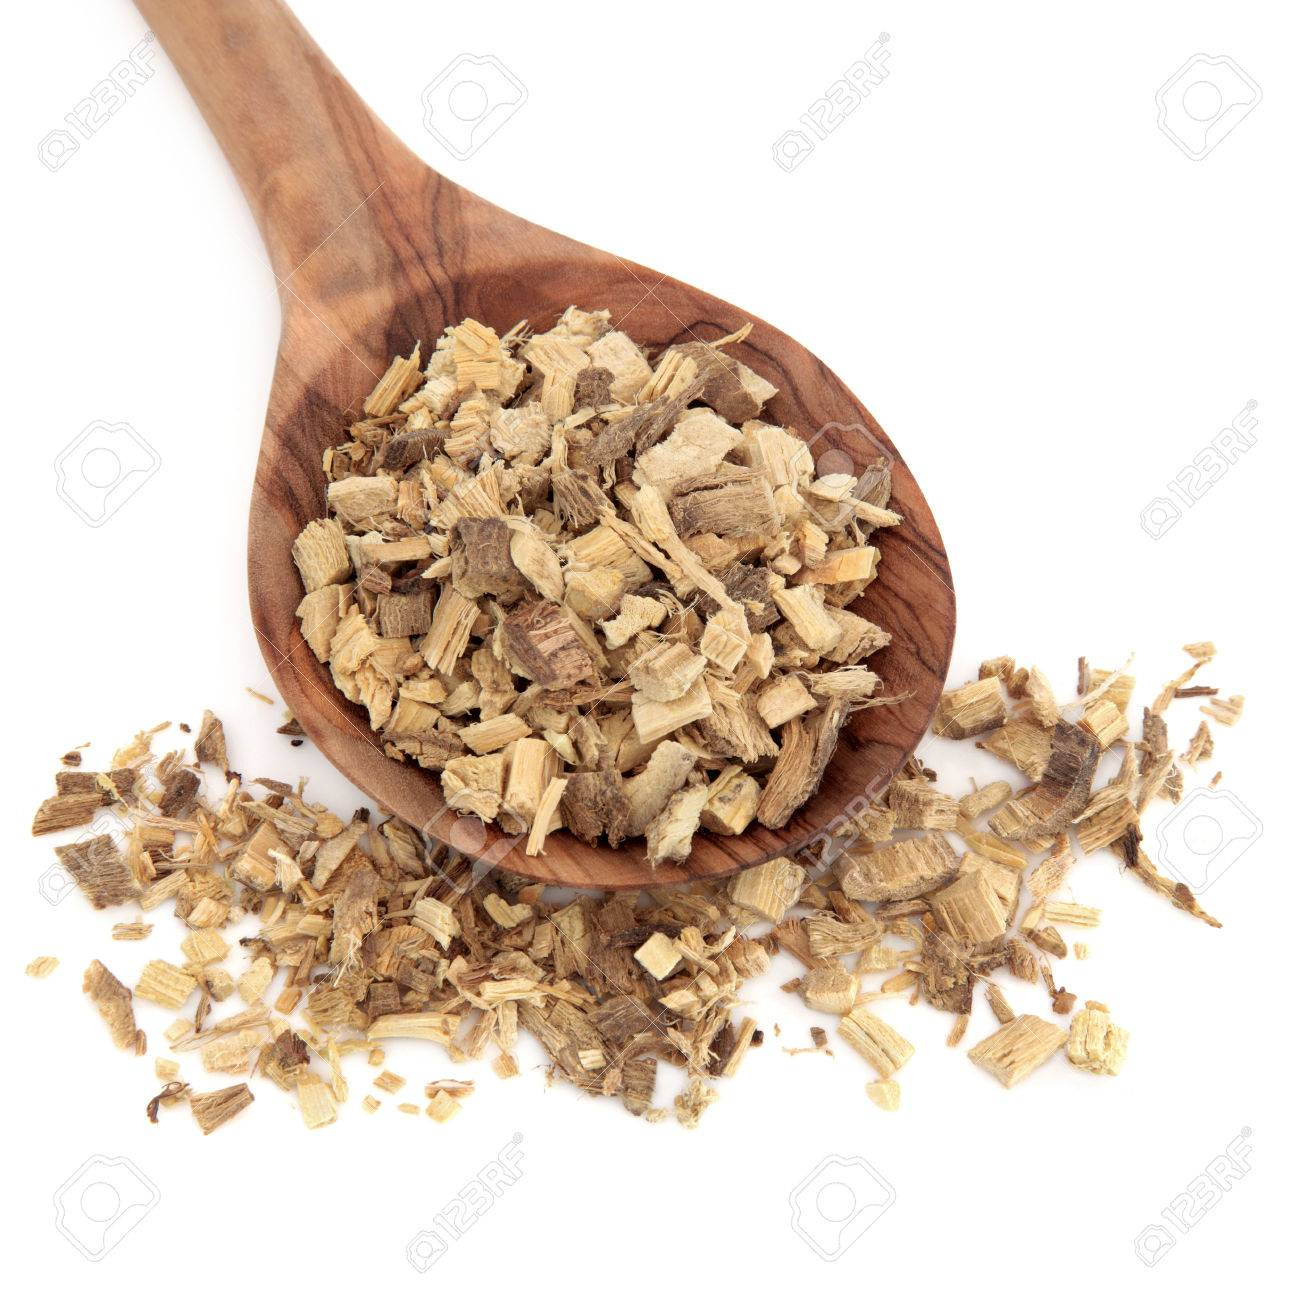 Chinese herbal products - Licorice Root Used In Chinese Herbal Medicine And Food Products In A Wooden Spoon Over White